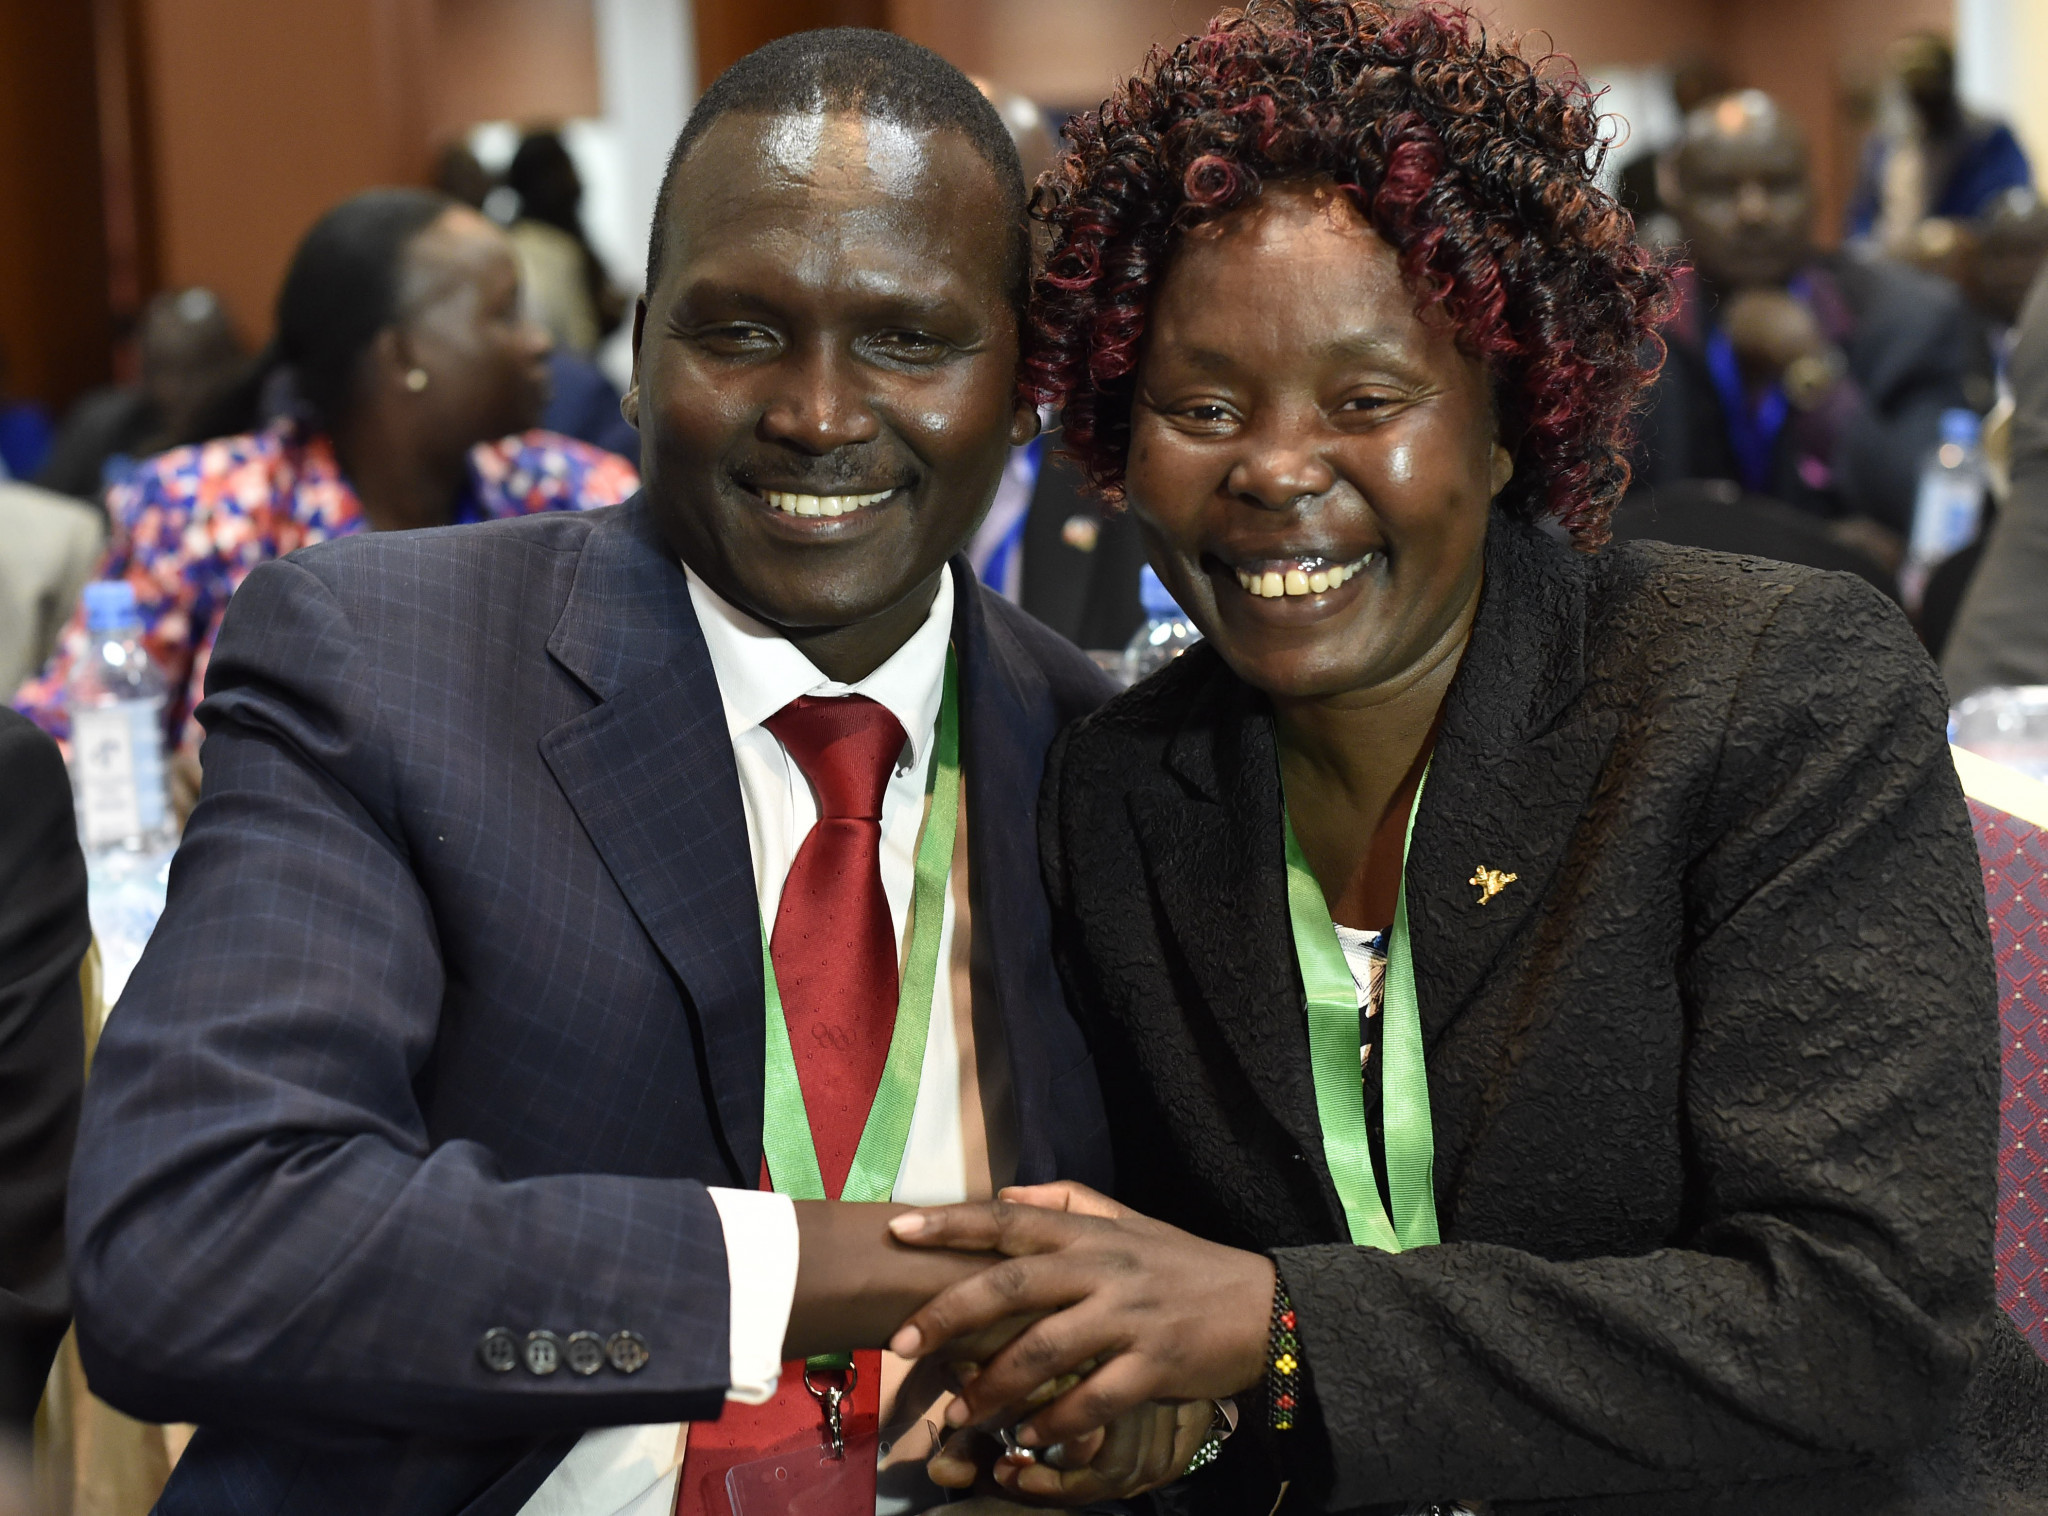 Paul Tergat celebrates his election as chairman of the National Olympic Committee of Kenya with Tegla Loroupe, whose own bid to be elected the woman representative was unsuccessful ©Getty Images